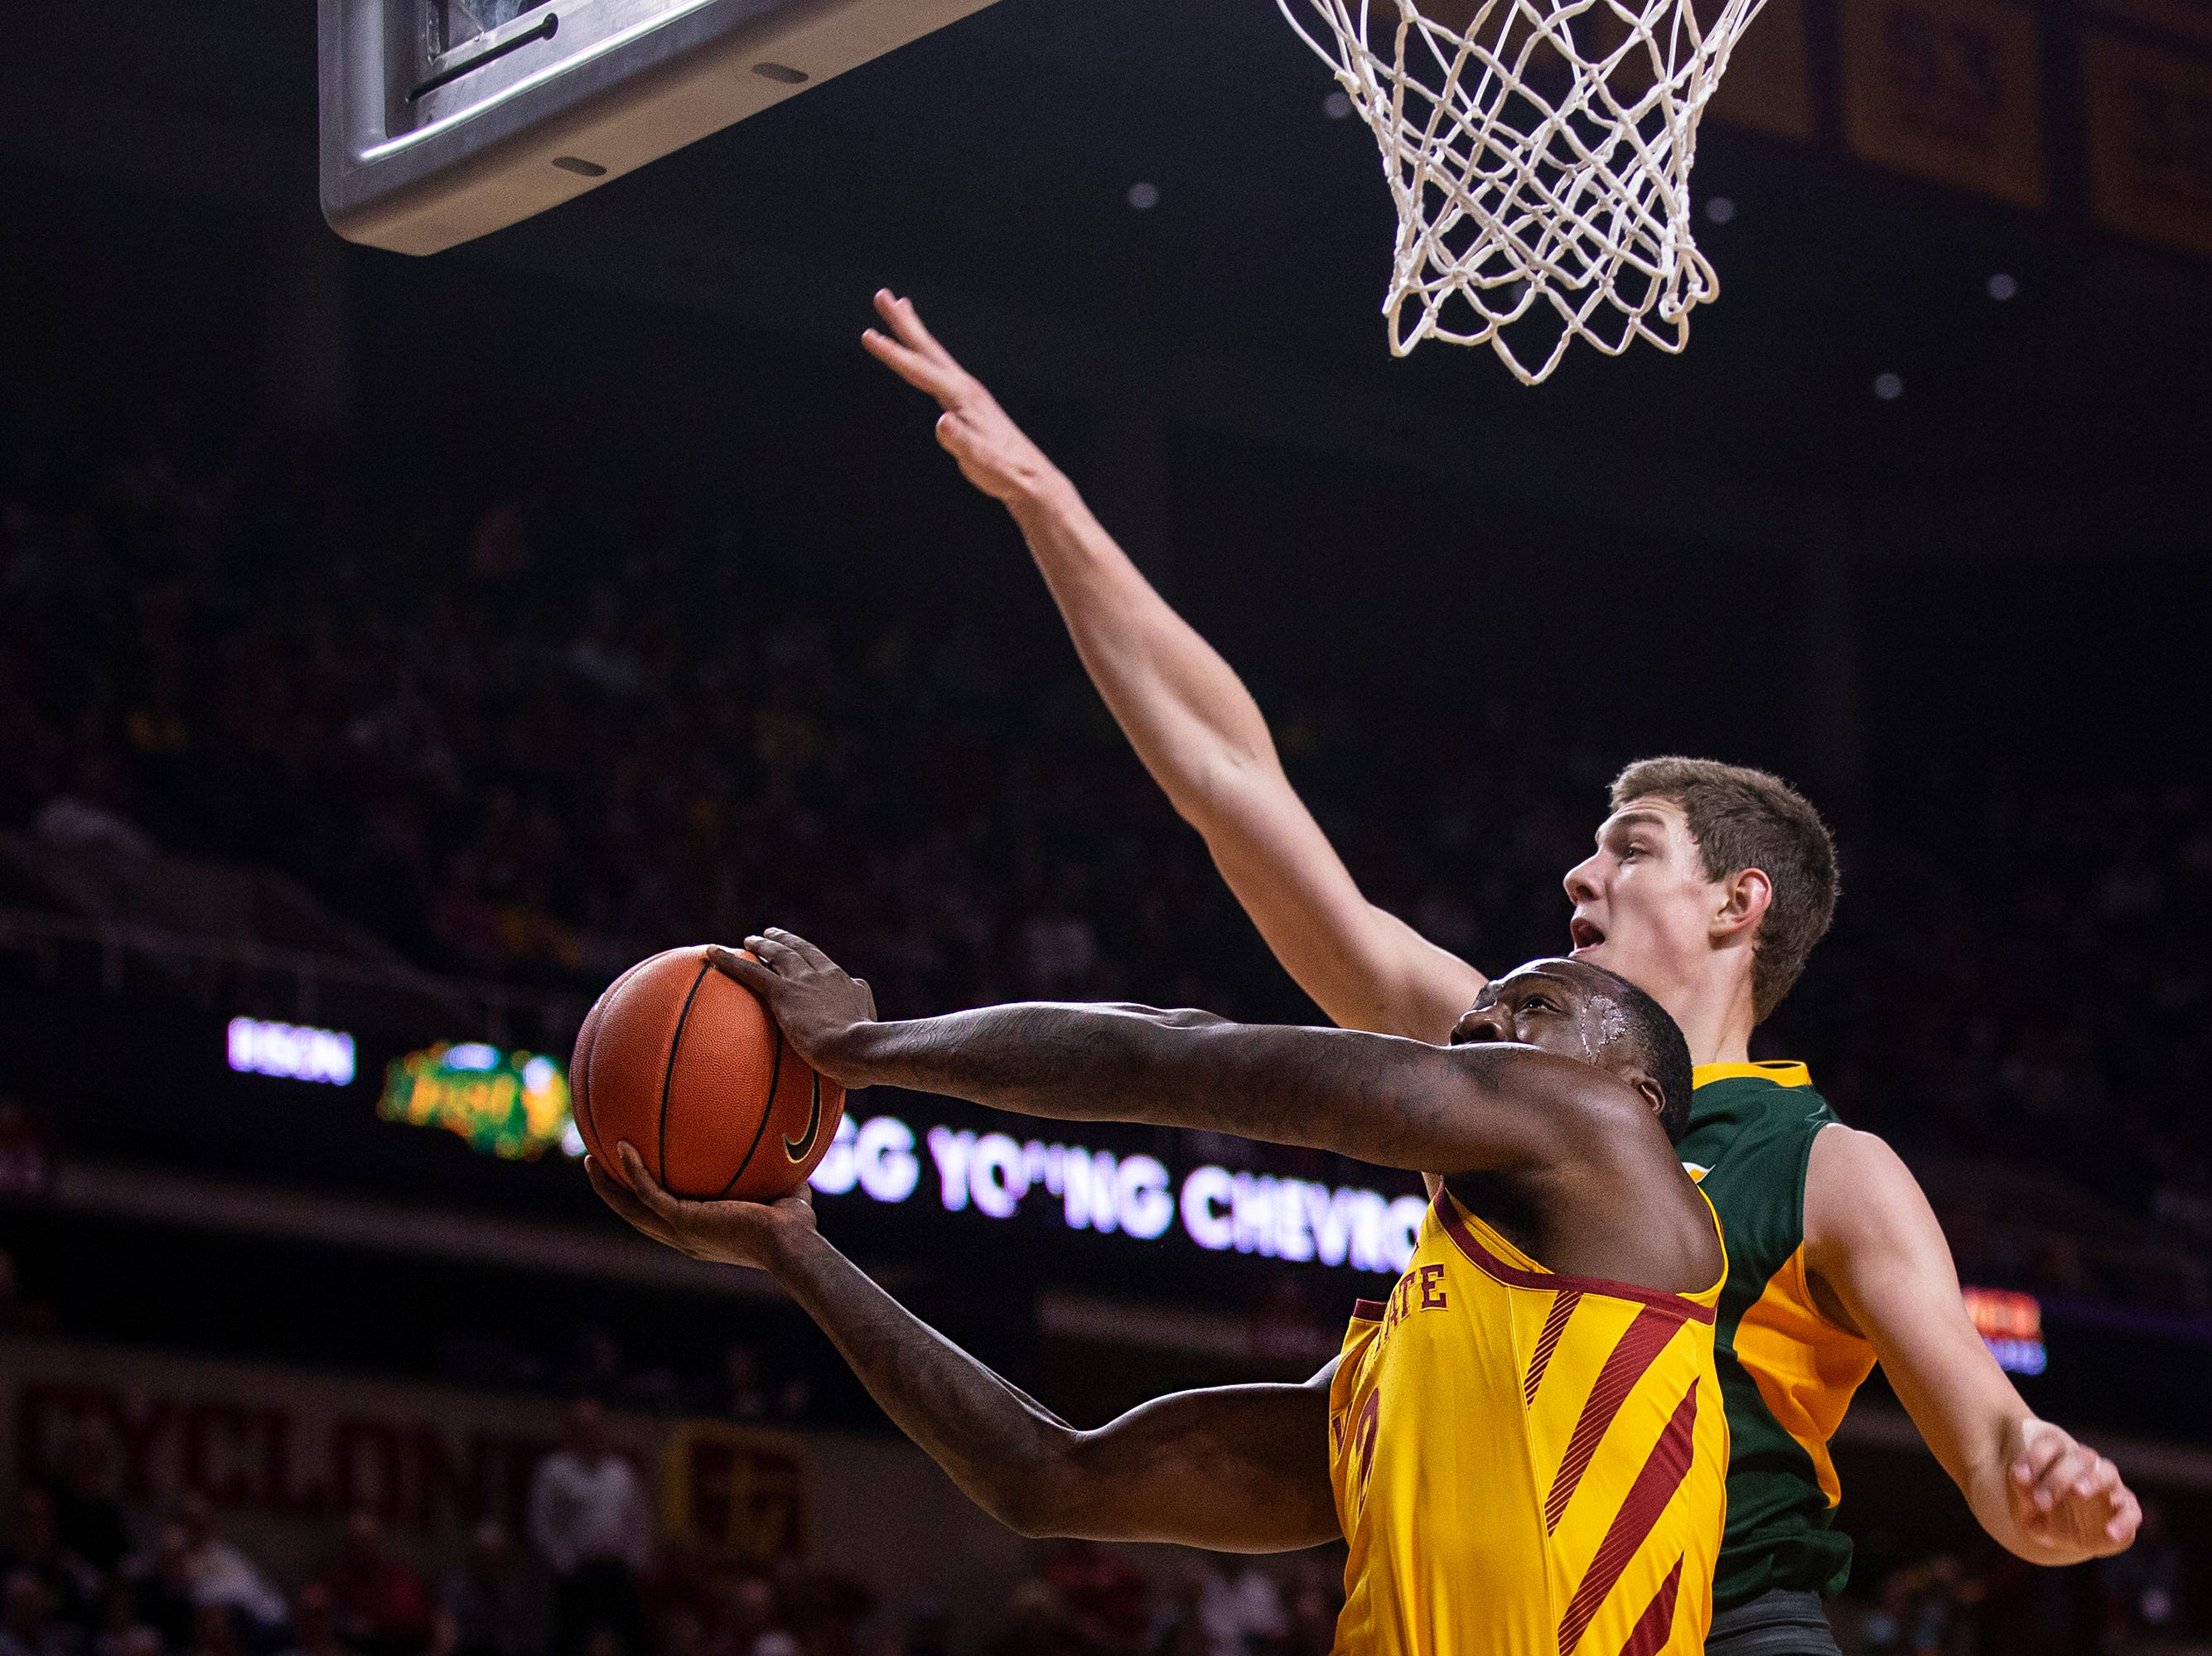 Iowa State's Cameron Lard attempts to shoot the ball during the Iowa State men's basketball game against North Dakota State University on Monday, Dec. 3, 2018, in Hilton Coliseum.